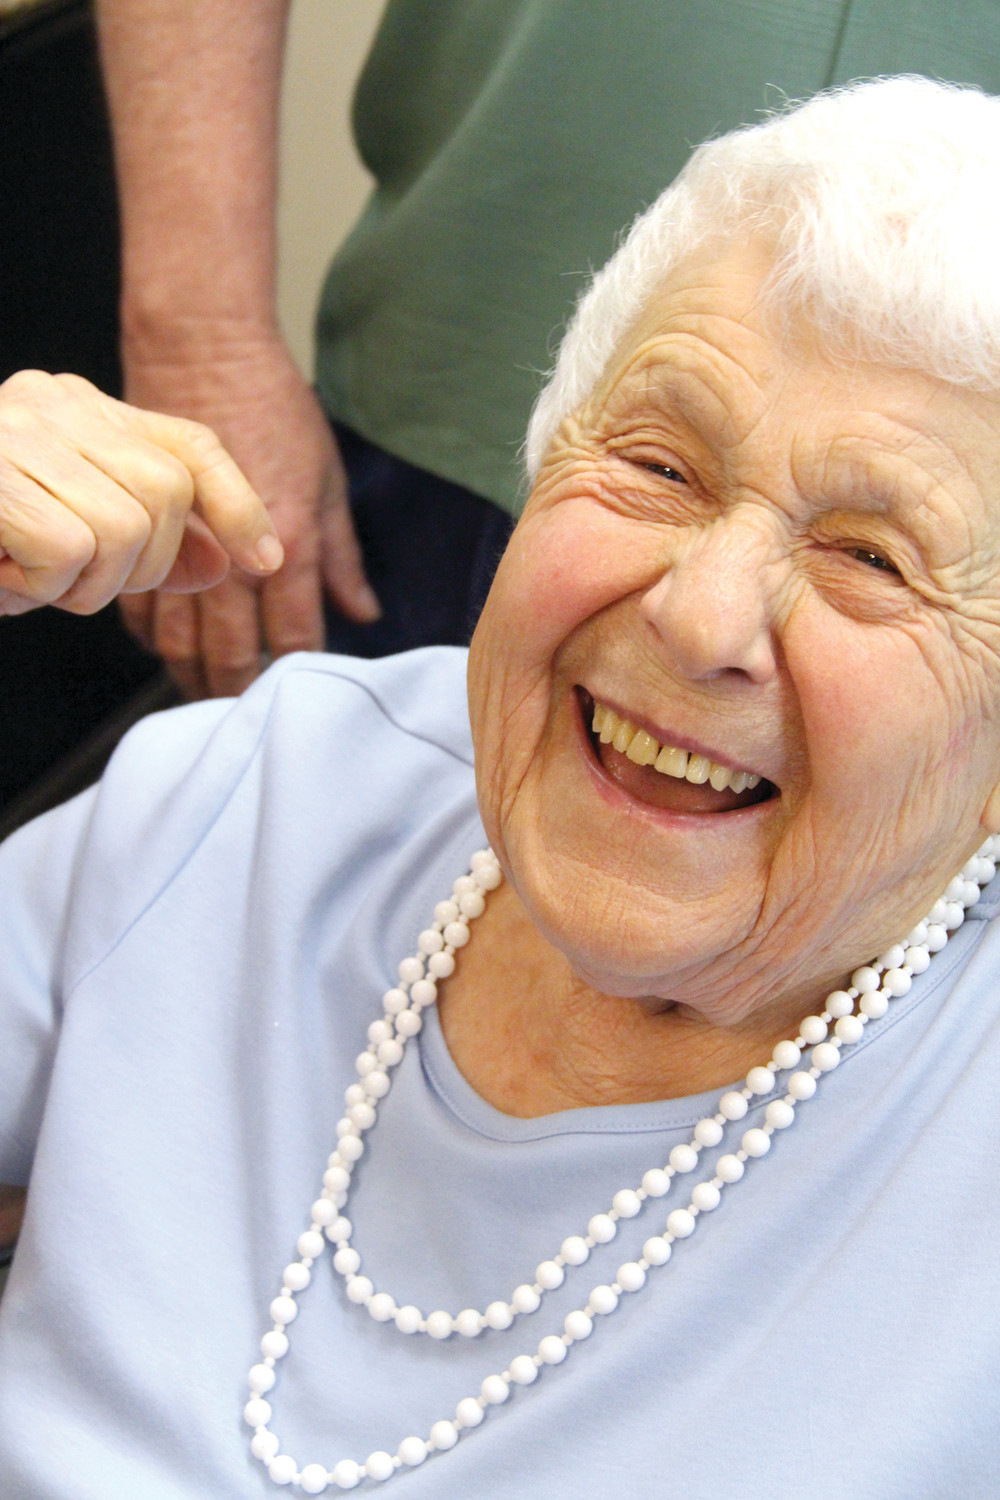 Teresa Romano will celebrate her 100th birthday on September 1.